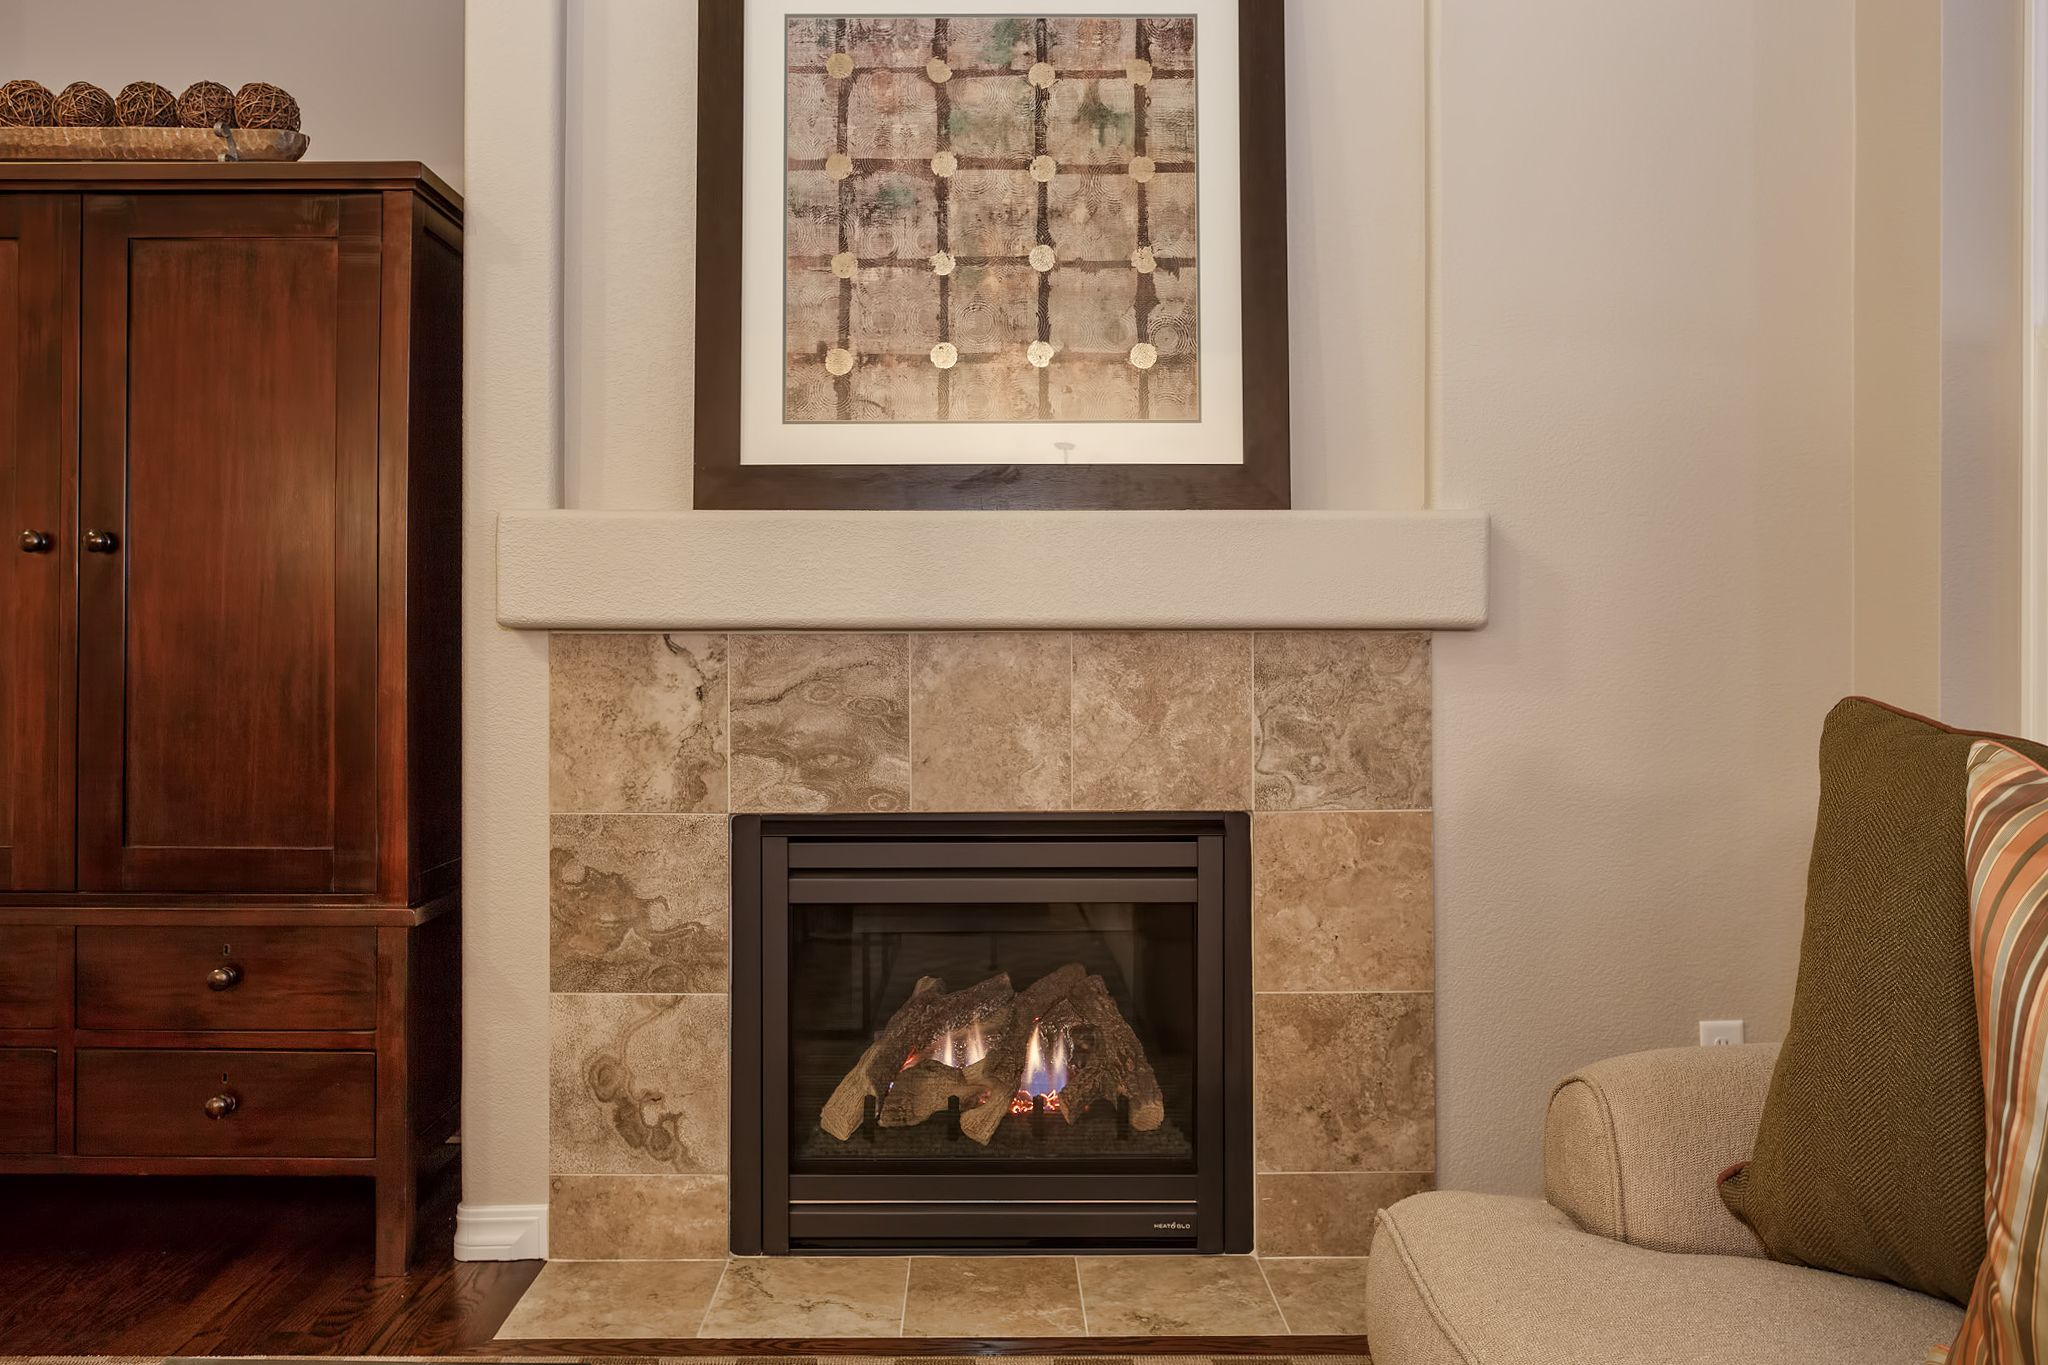 The Gas Fireplace With Custom Tile Surround Makes The Spacious